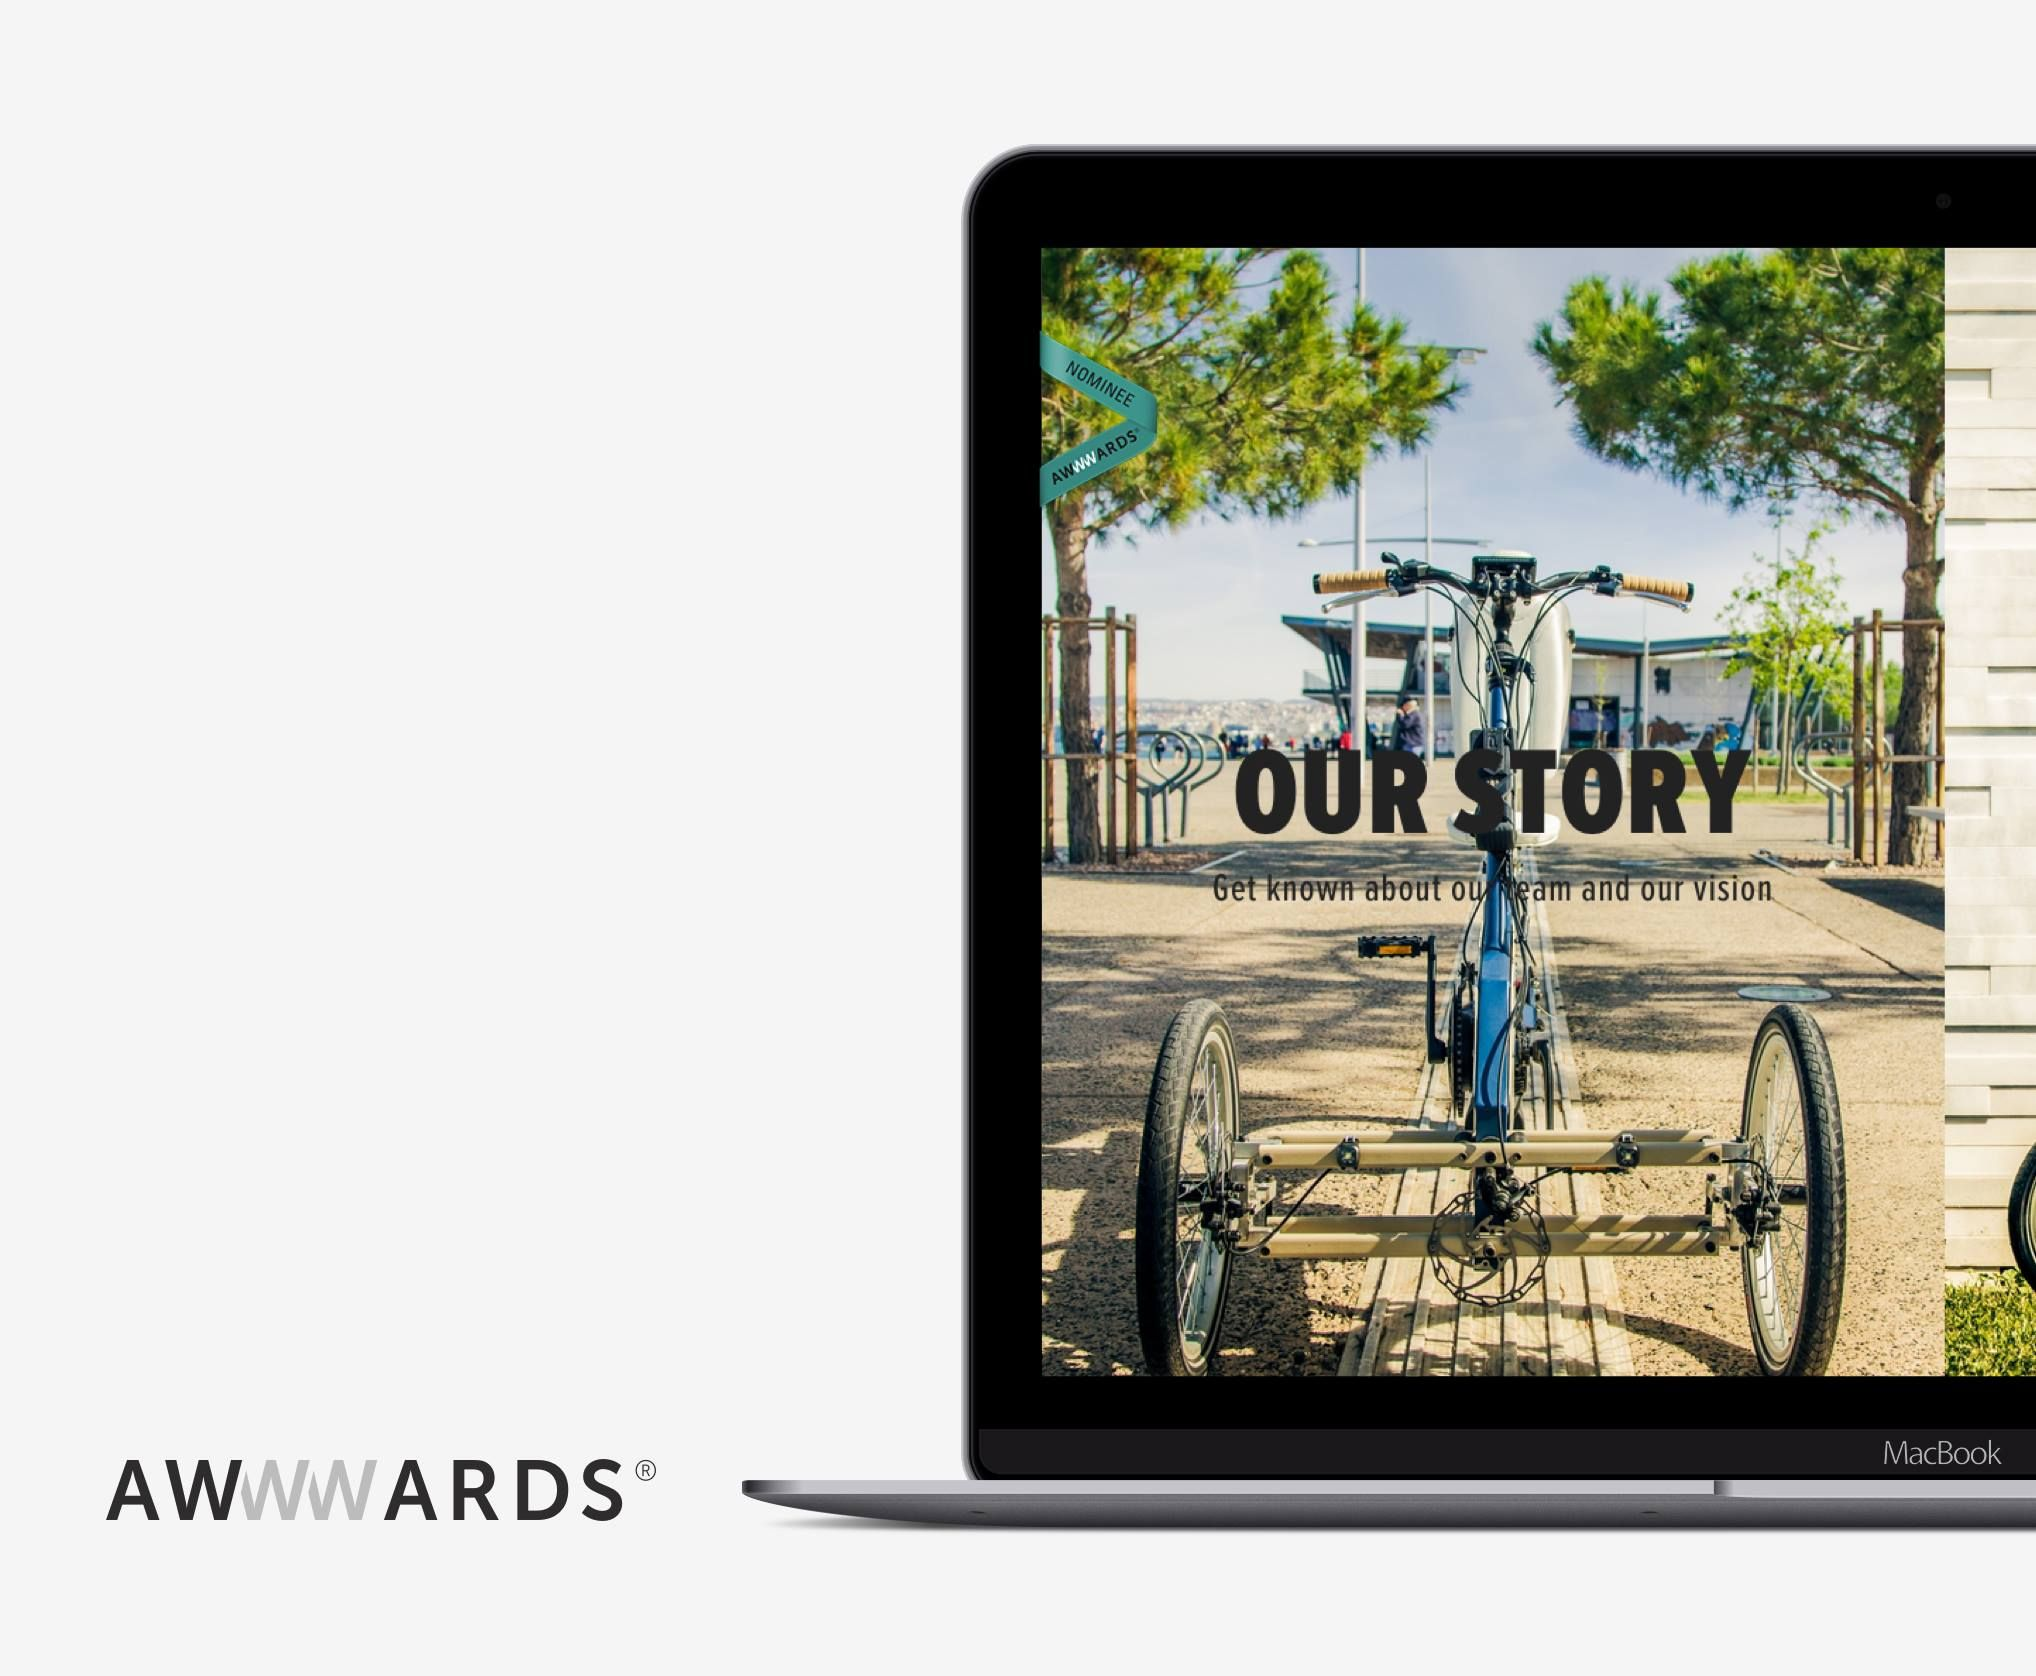 Our website www.elektroniowheels.com, made with love by Grammik, is nominee at Awwwards this week !  #reimagineyourvehicle